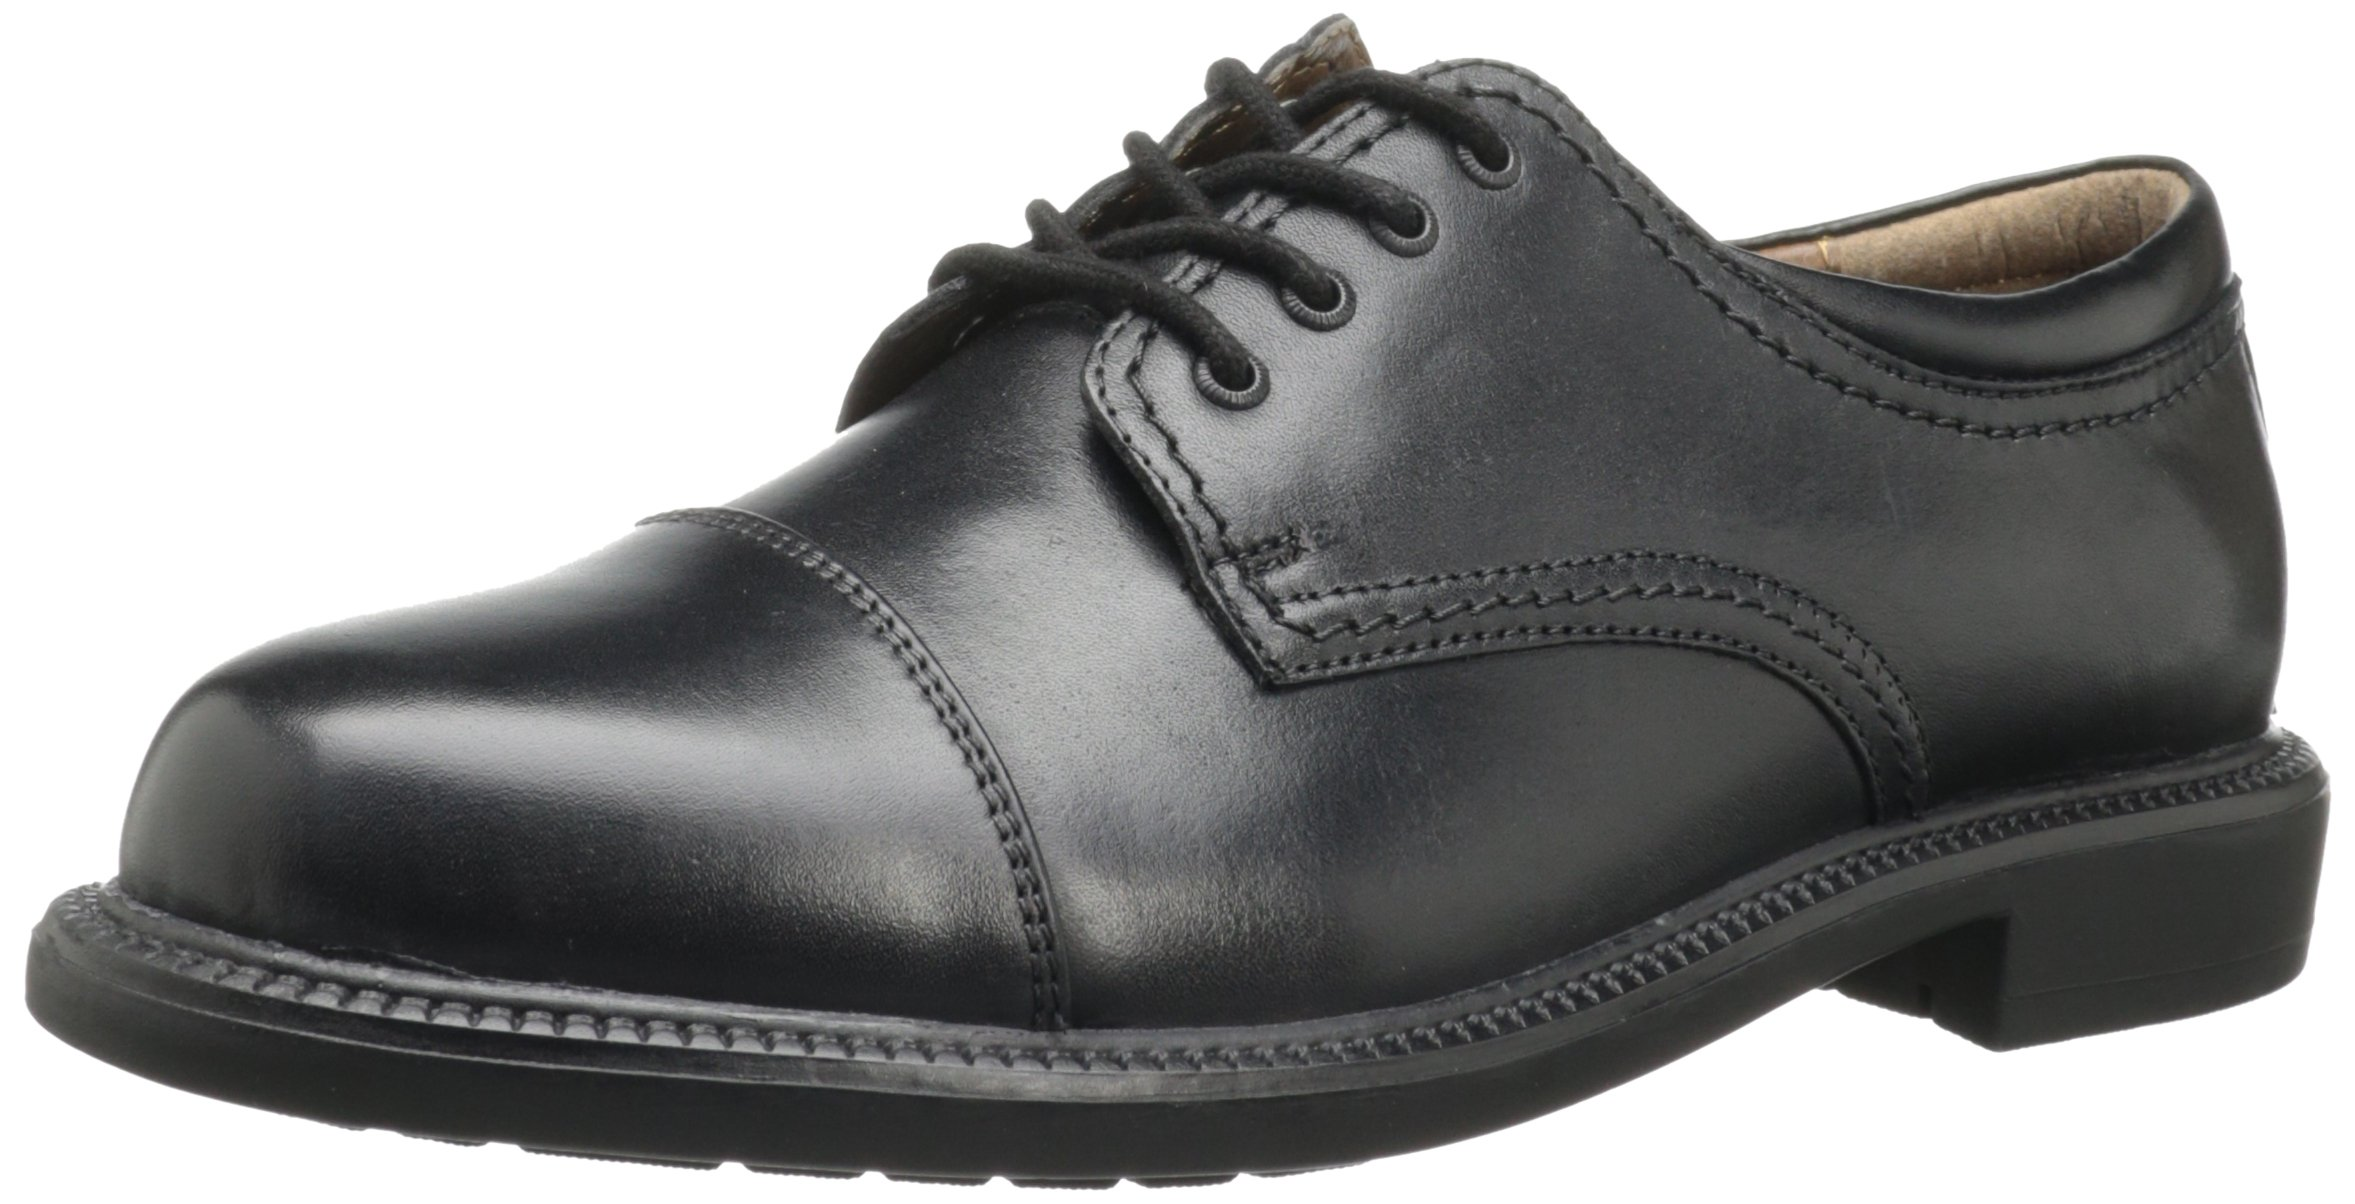 Dockers Men's Gordon Cap-Toe Oxford